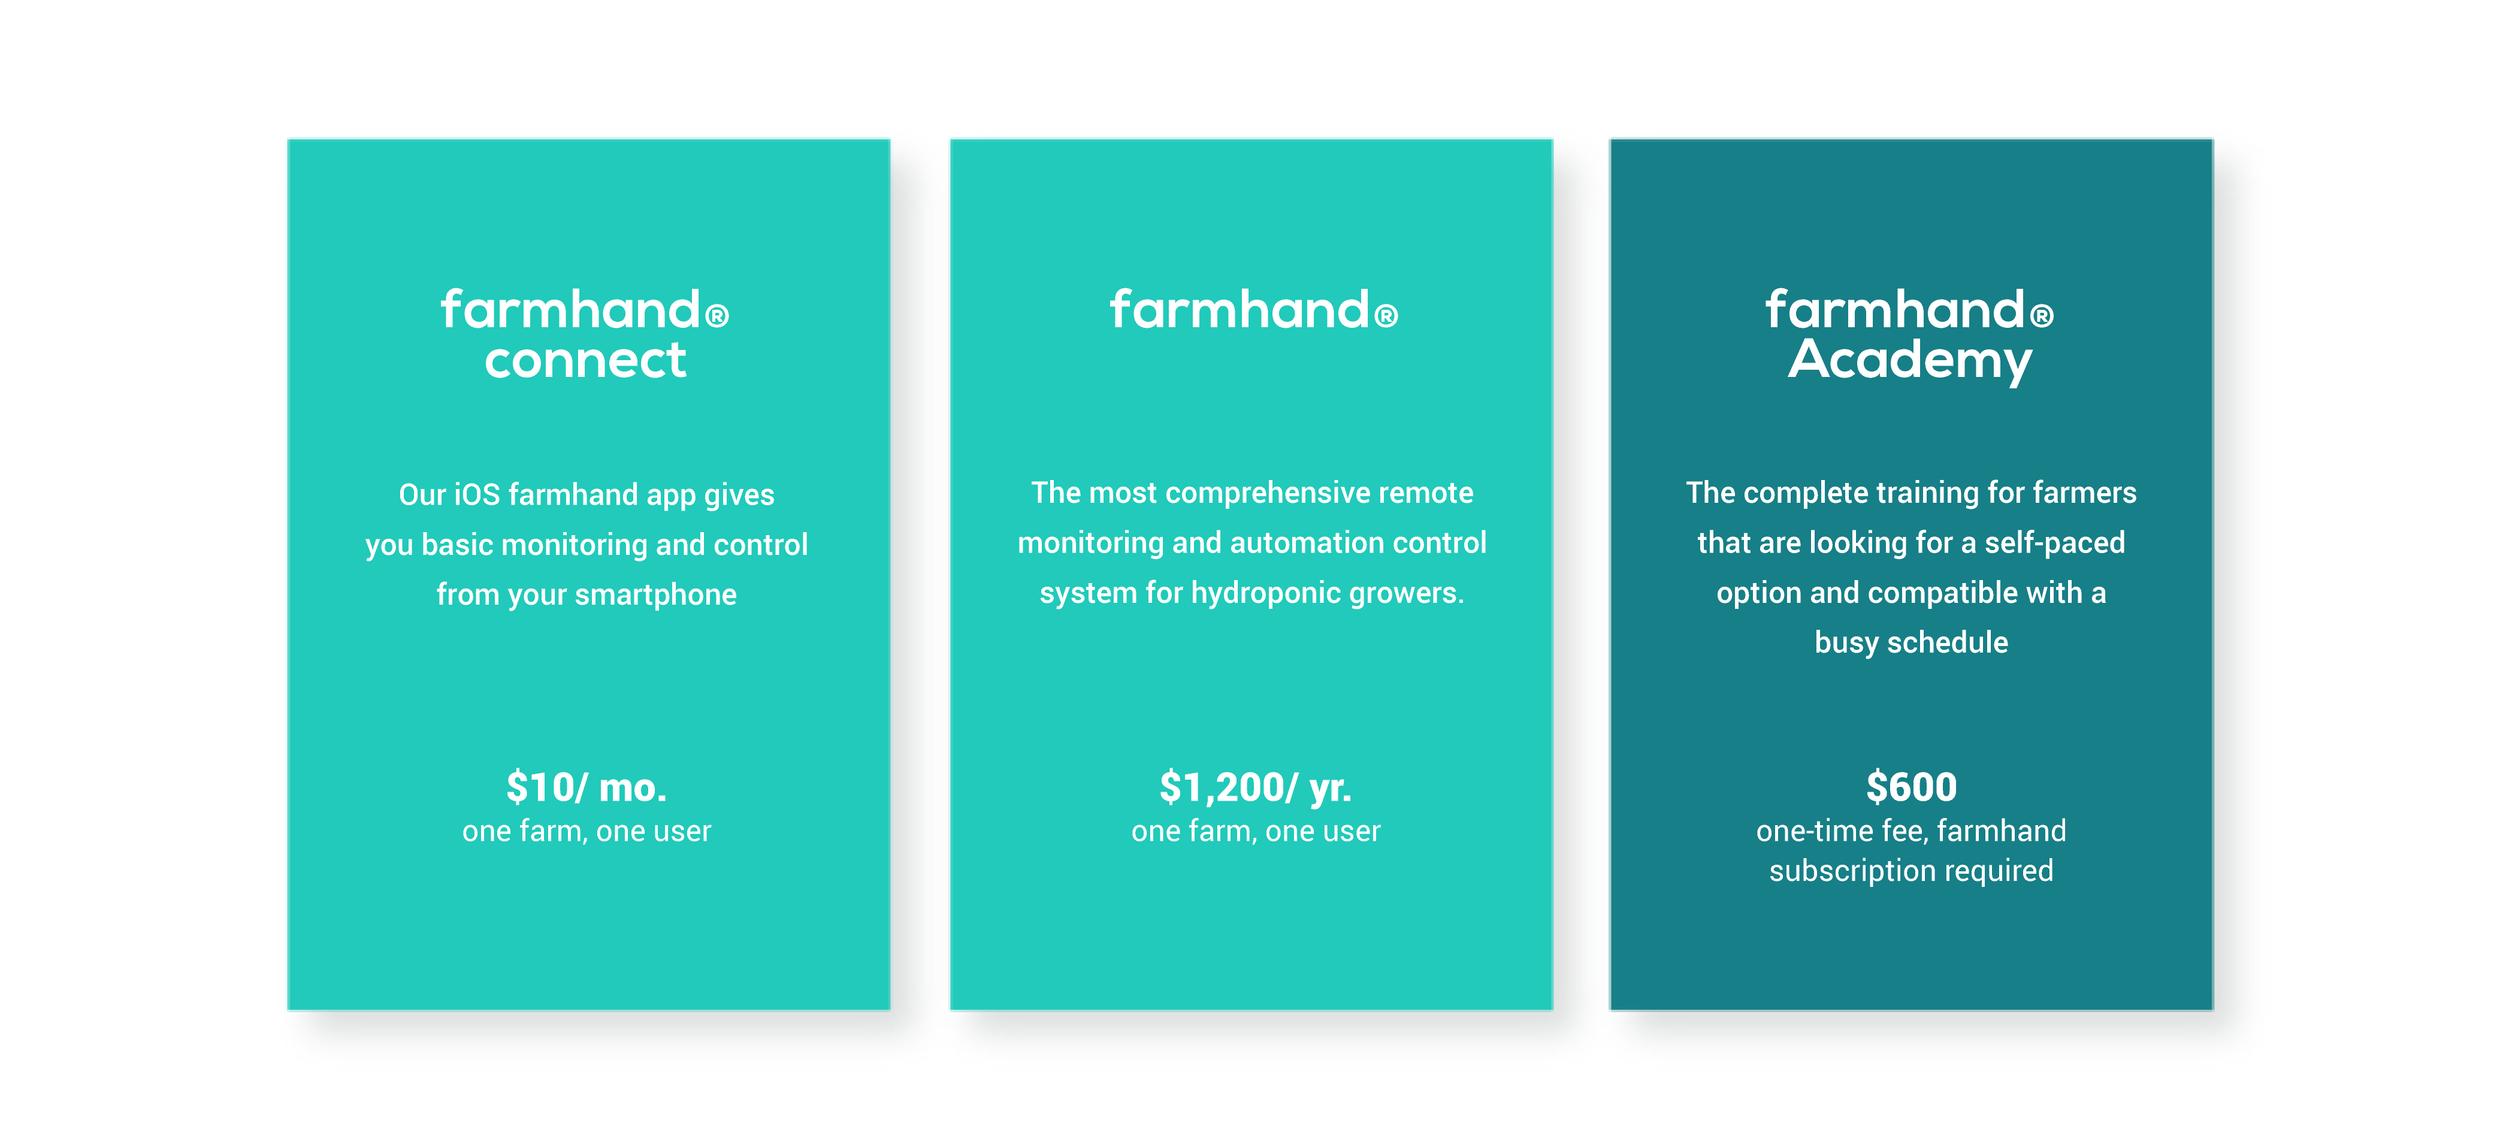 farmhand_subscriptions 02-01.png